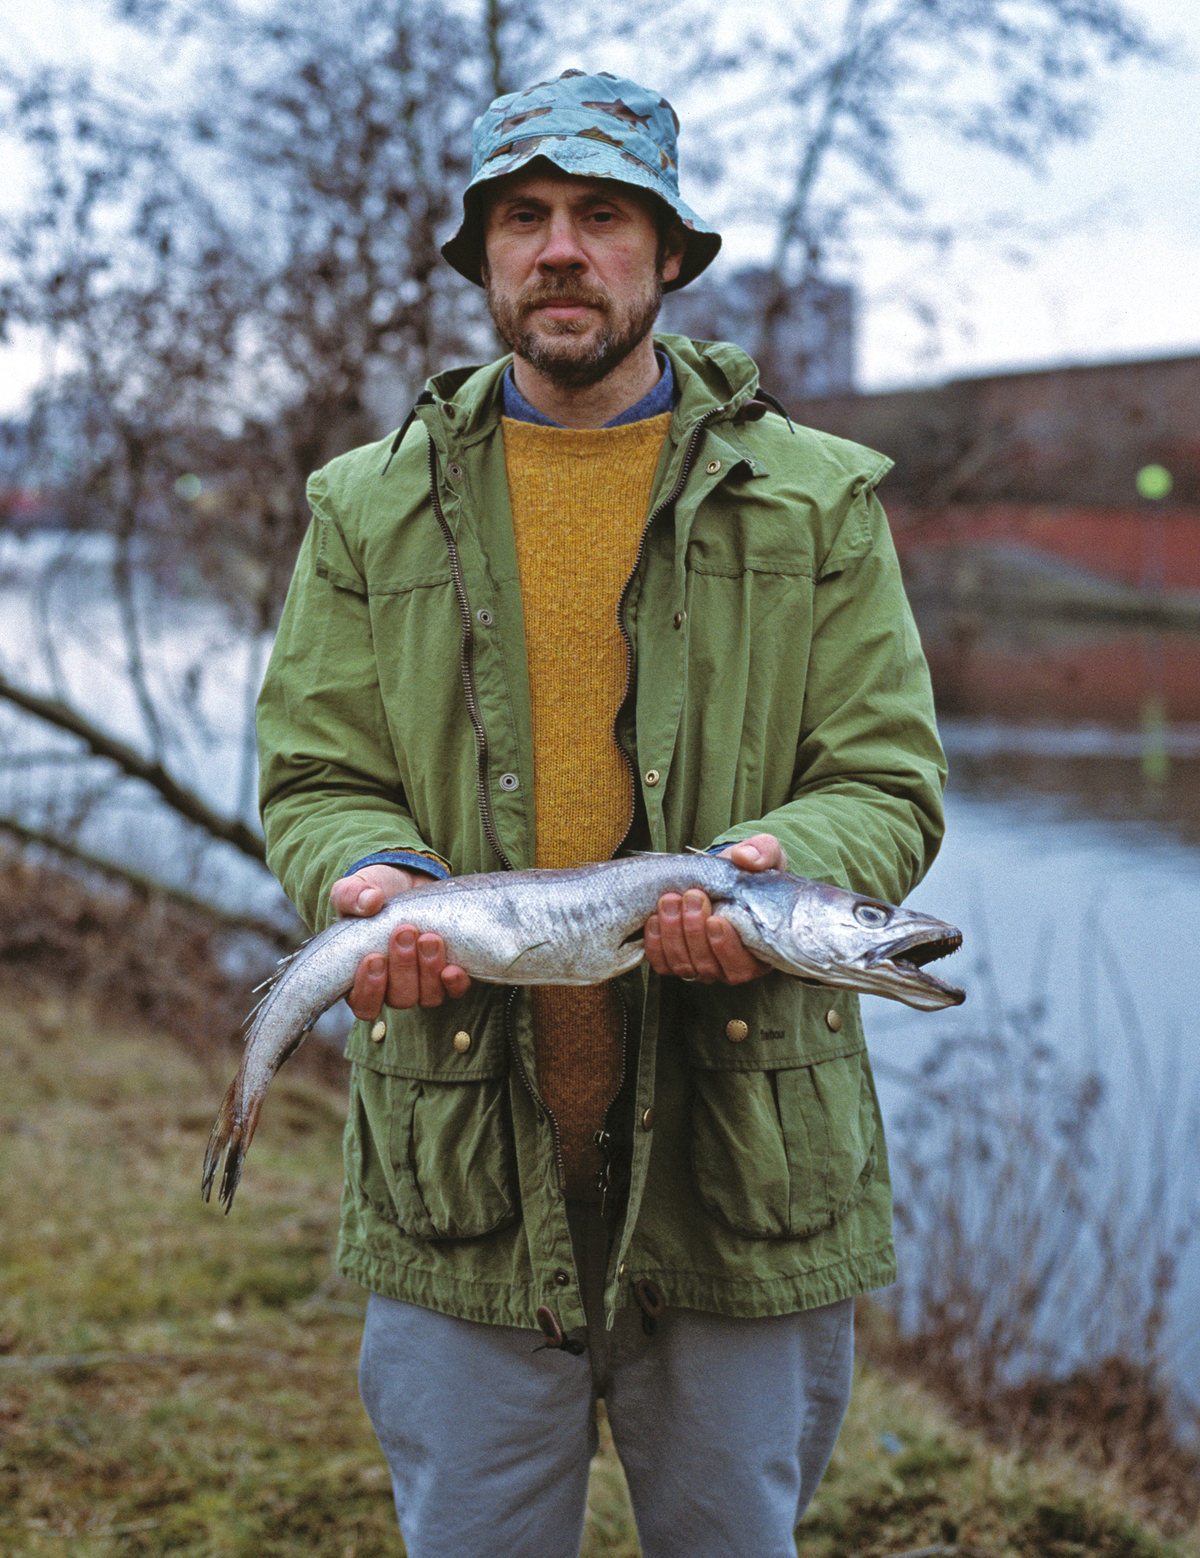 Hat and Jacket by Barbour, knitwear by Howlin', cords by Levi's Vintage Clothing, fish – model's own